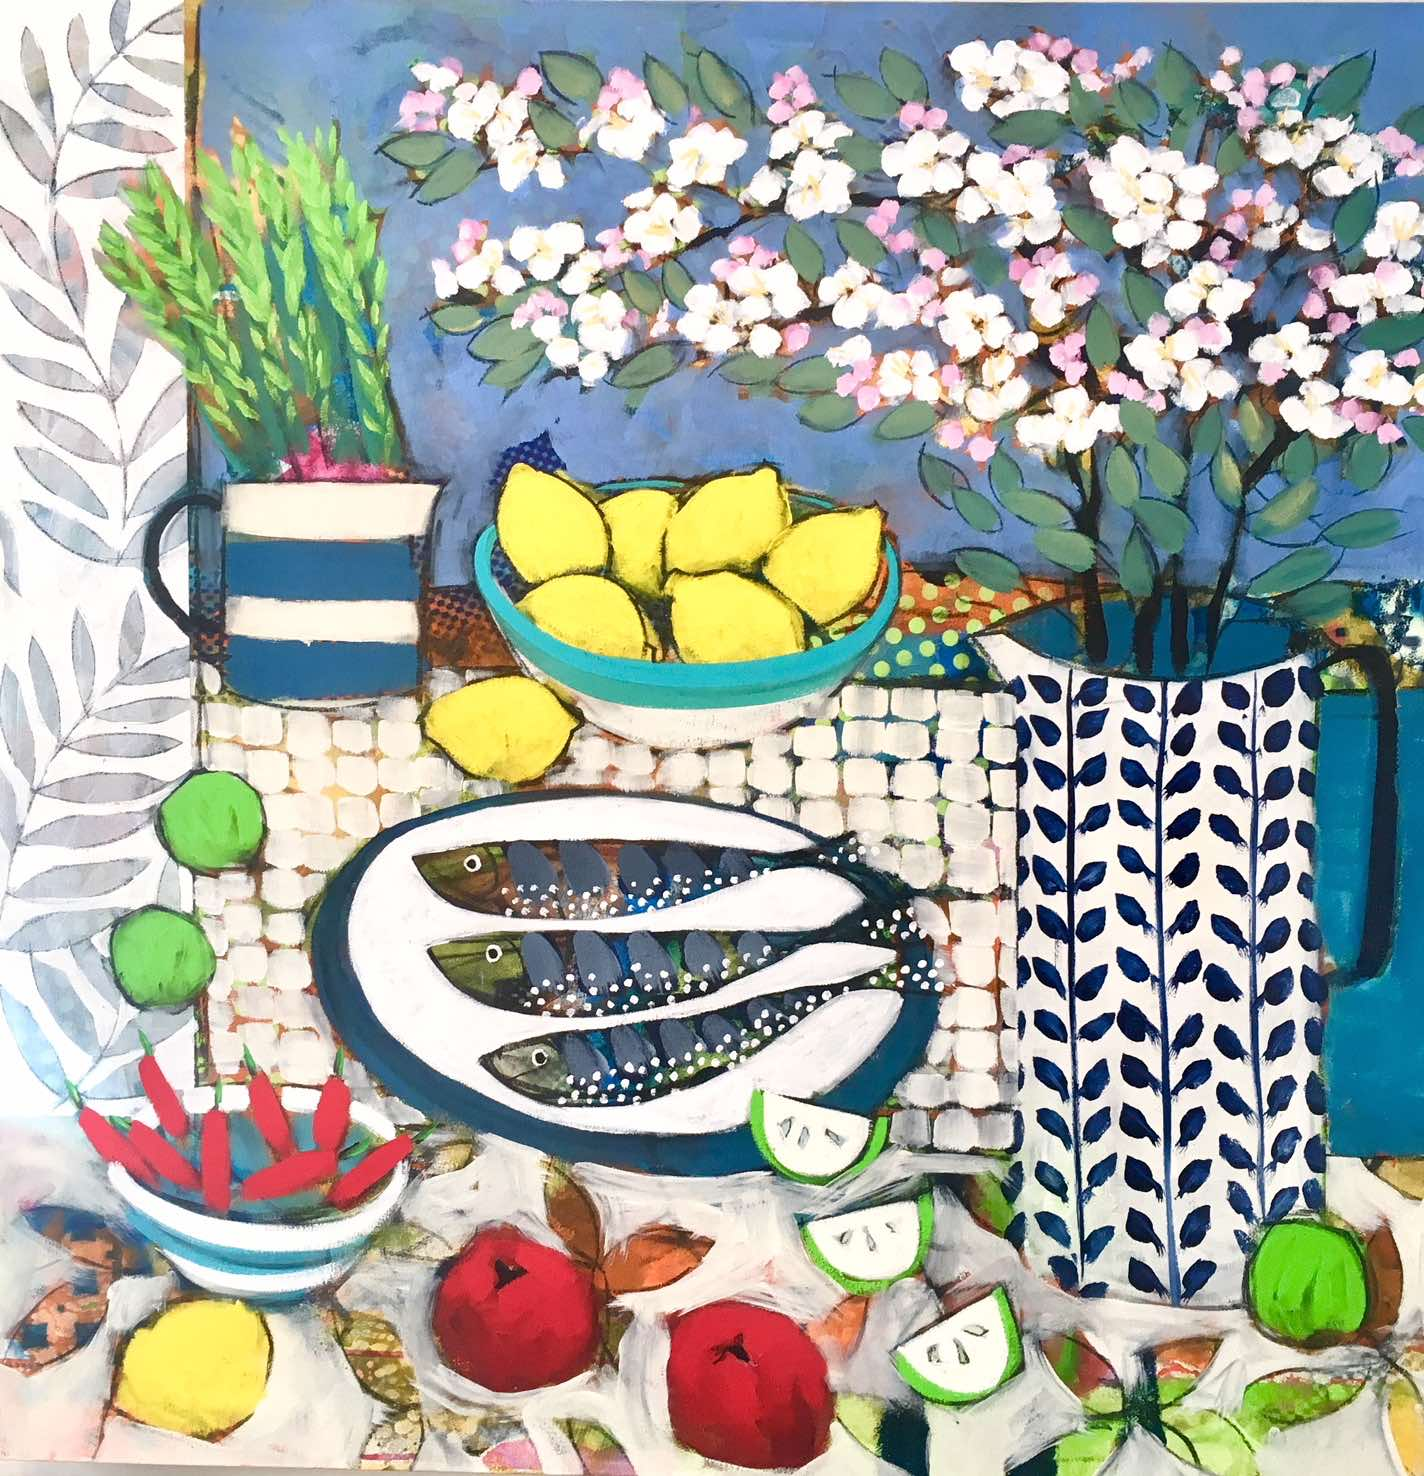 "<span class=""link fancybox-details-link""><a href=""/artists/59-relton-marine/works/2313-relton-marine-still-life-with-appleblossom-and-fish/"">View Detail Page</a></span><div class=""artist""><strong>Relton Marine</strong></div> <div class=""title""><em>Still Life with Appleblossom and Fish</em></div> <div class=""medium"">Acrylic on Canvas</div> <div class=""dimensions"">91 x 91 cm </div><div class=""copyright_line"">Copyright The Artist</div>"